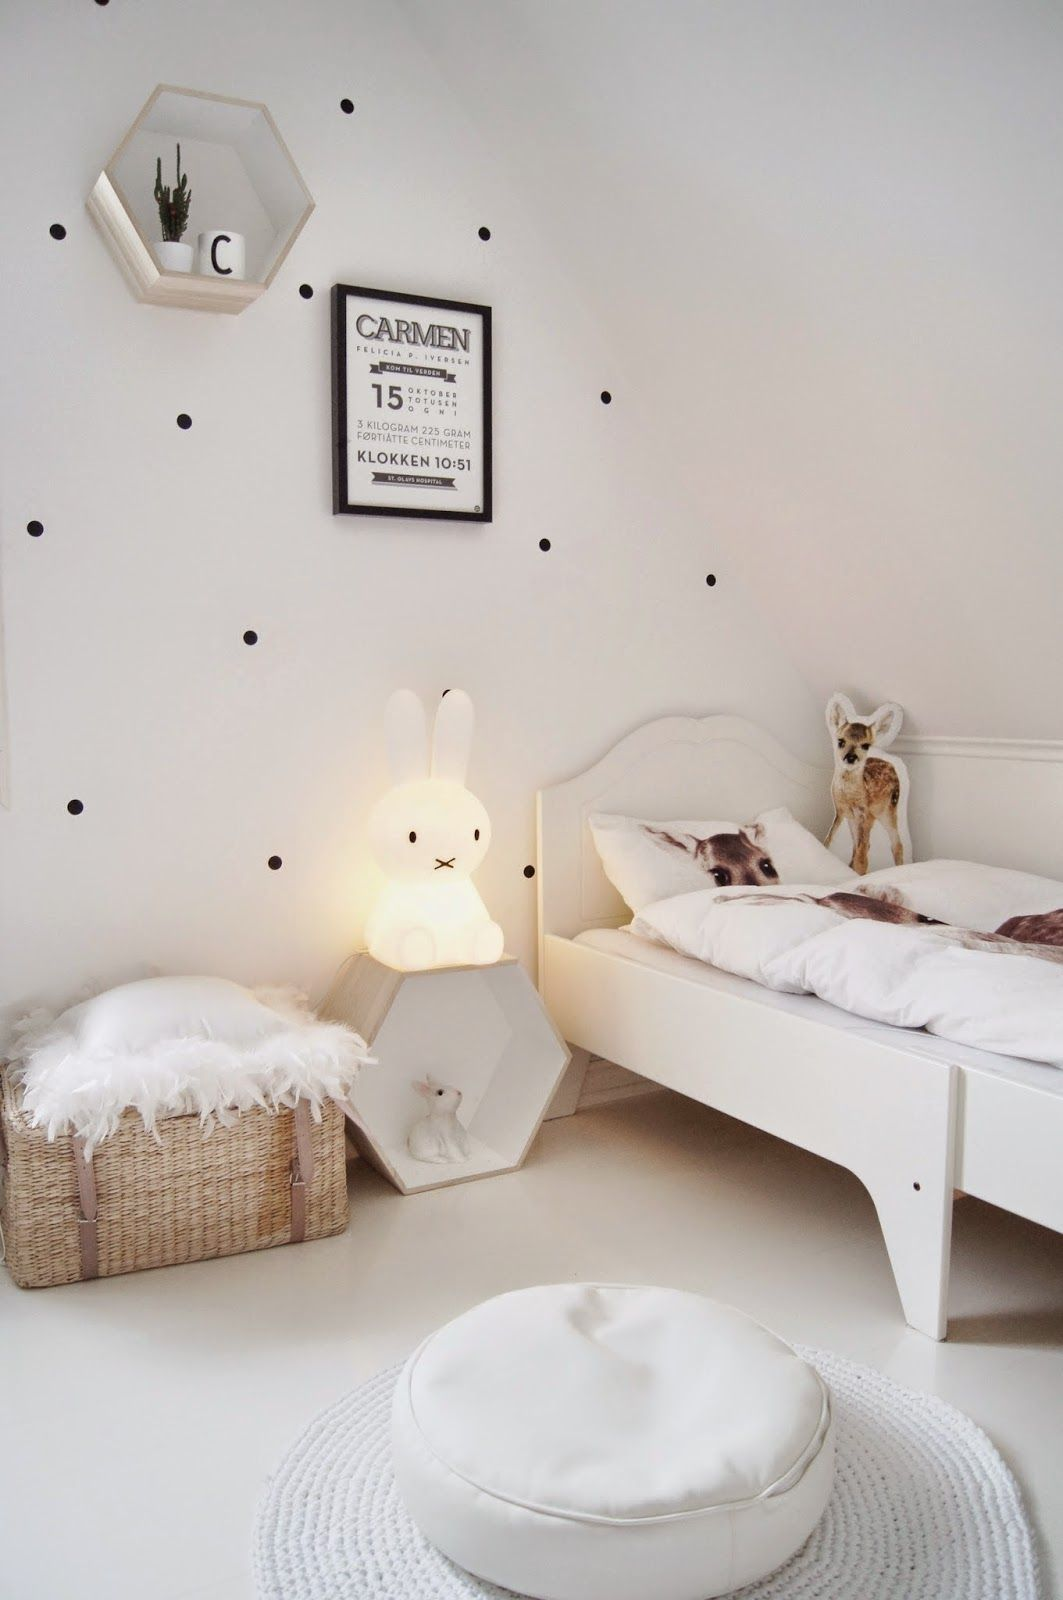 Elegant Black And White, Scandinavian, Minimalist Baby Room Decor Mitt Lille  Hjerte: Fødselstavle.